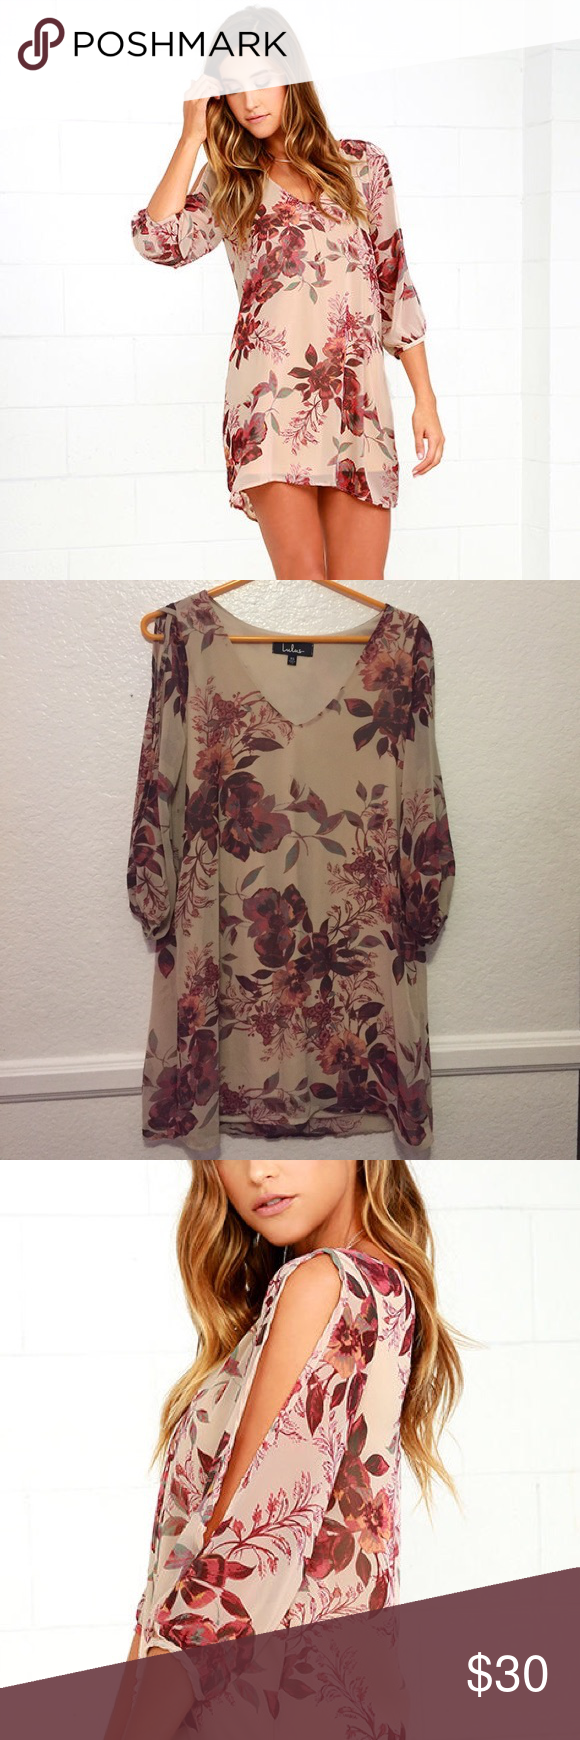 Brand new Lulu's shift dress Brand new with tags! Size XS but can probably fit a small! Would look great for a day out on the town! Lulu's Dresses Long Sleeve